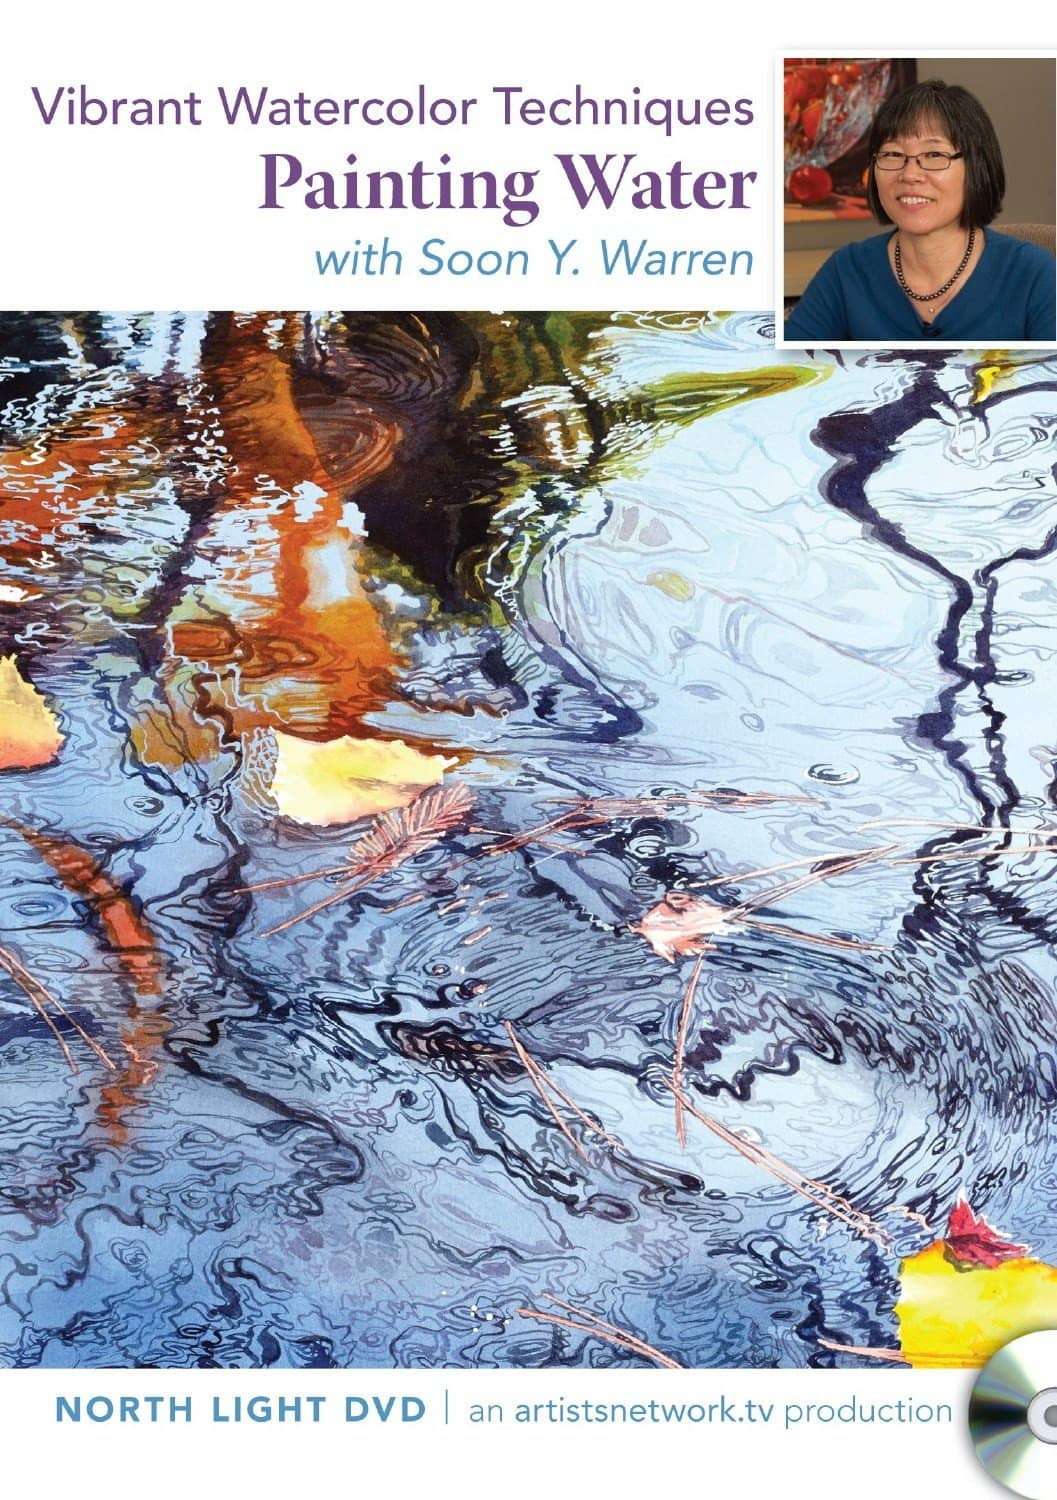 Vibrant Watercolors: Painting Water with Soon Y. Warren Art Instruction Video-DVD from Creative Catalyst